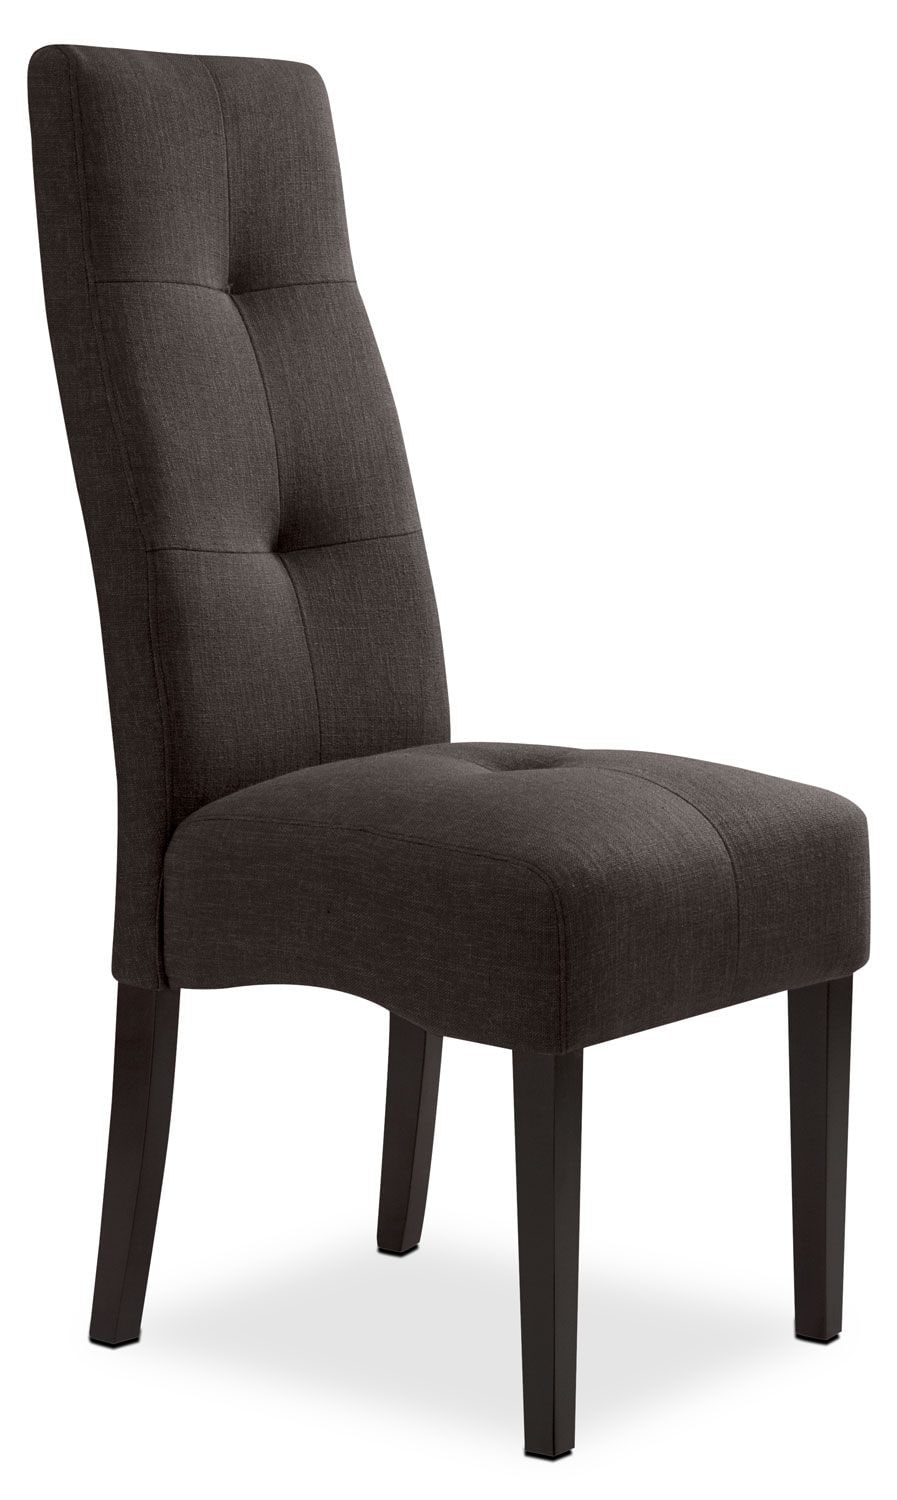 Sadie Dining Chair - Grey